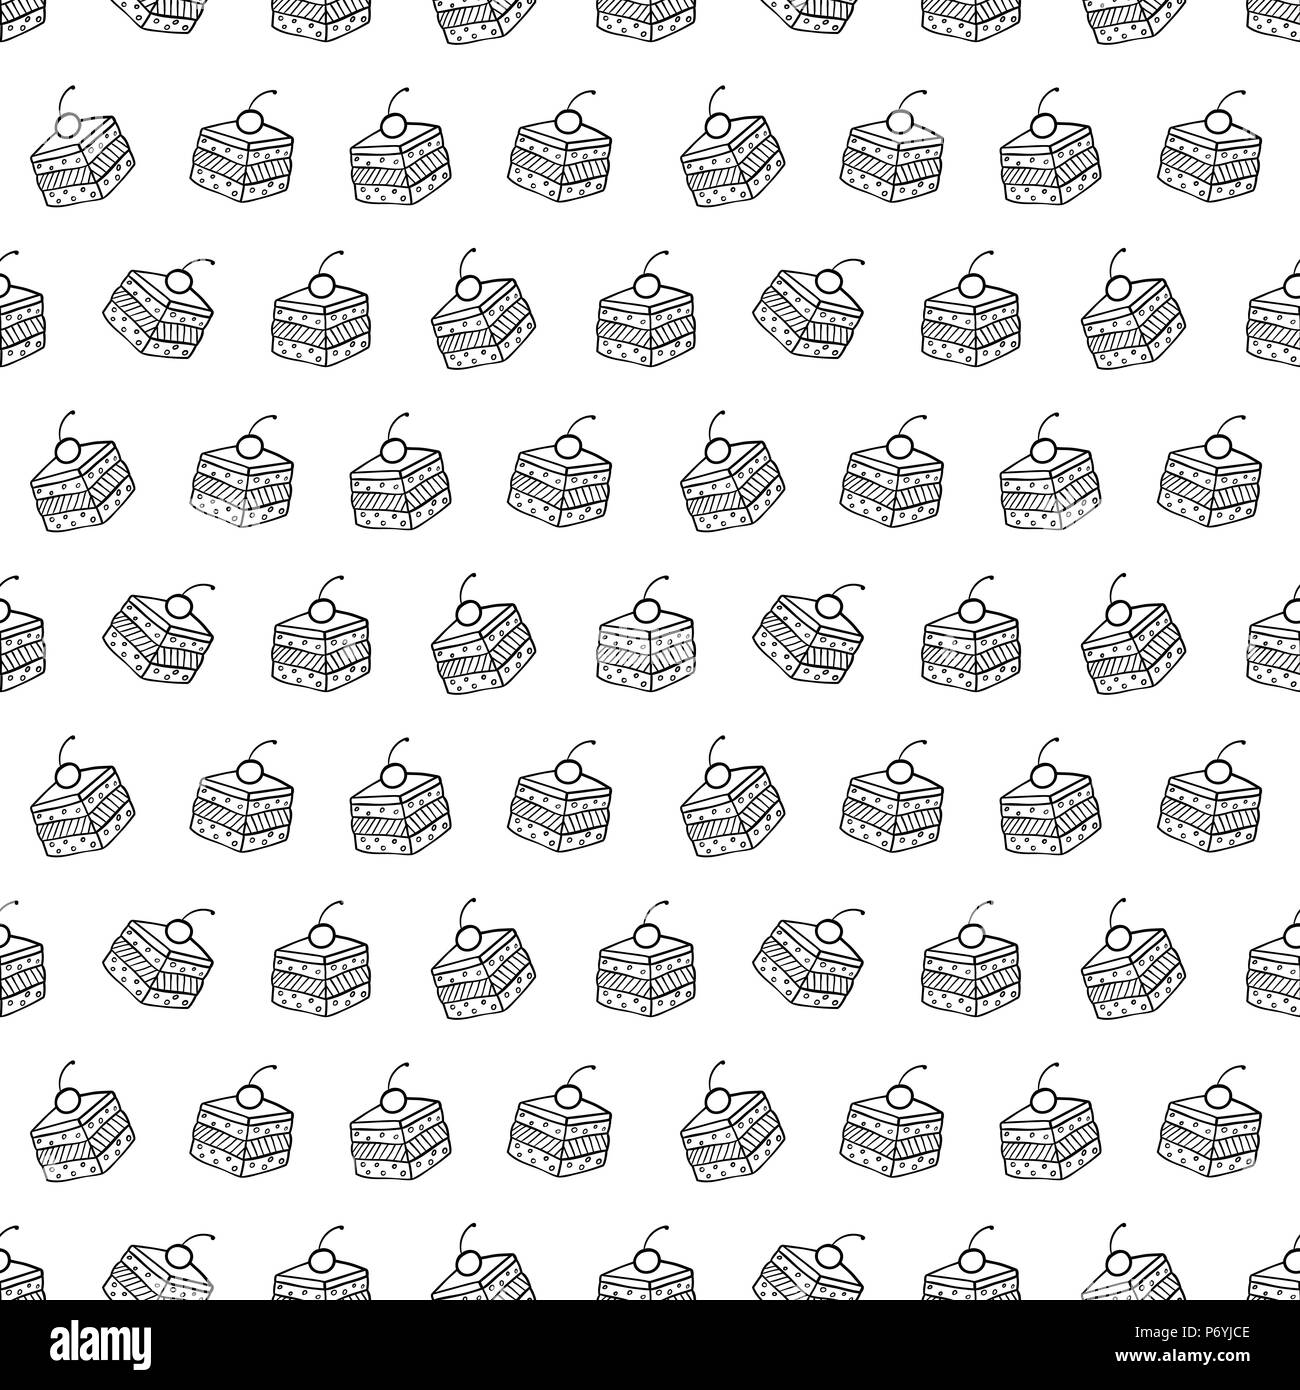 Cartoon cute cakes on white background. Simple seamless pattern. Linear coloring illustration. - Stock Image